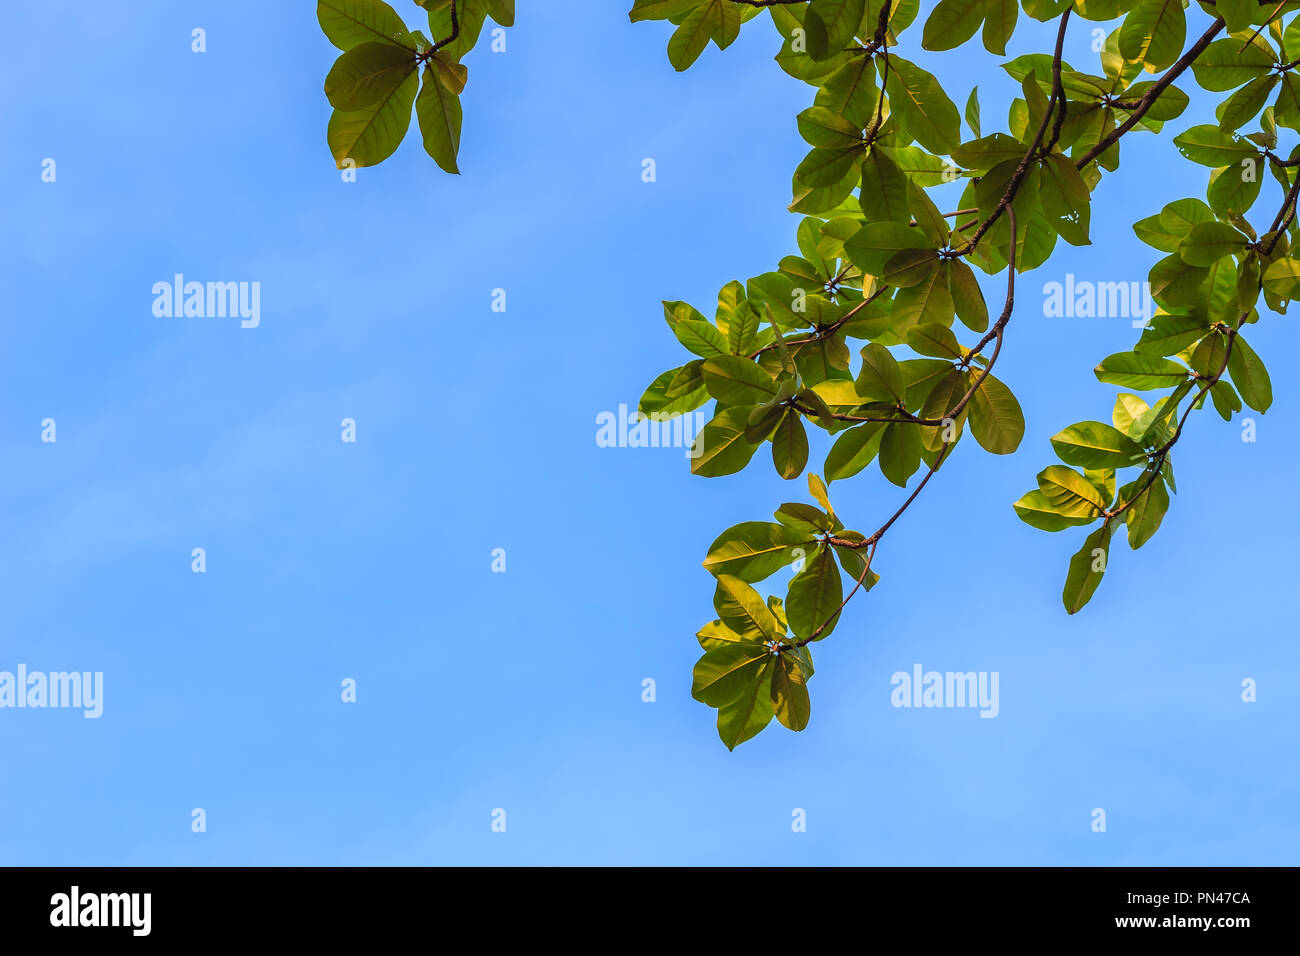 Green leaves background of Terminalia catappa tree on blue sky  It